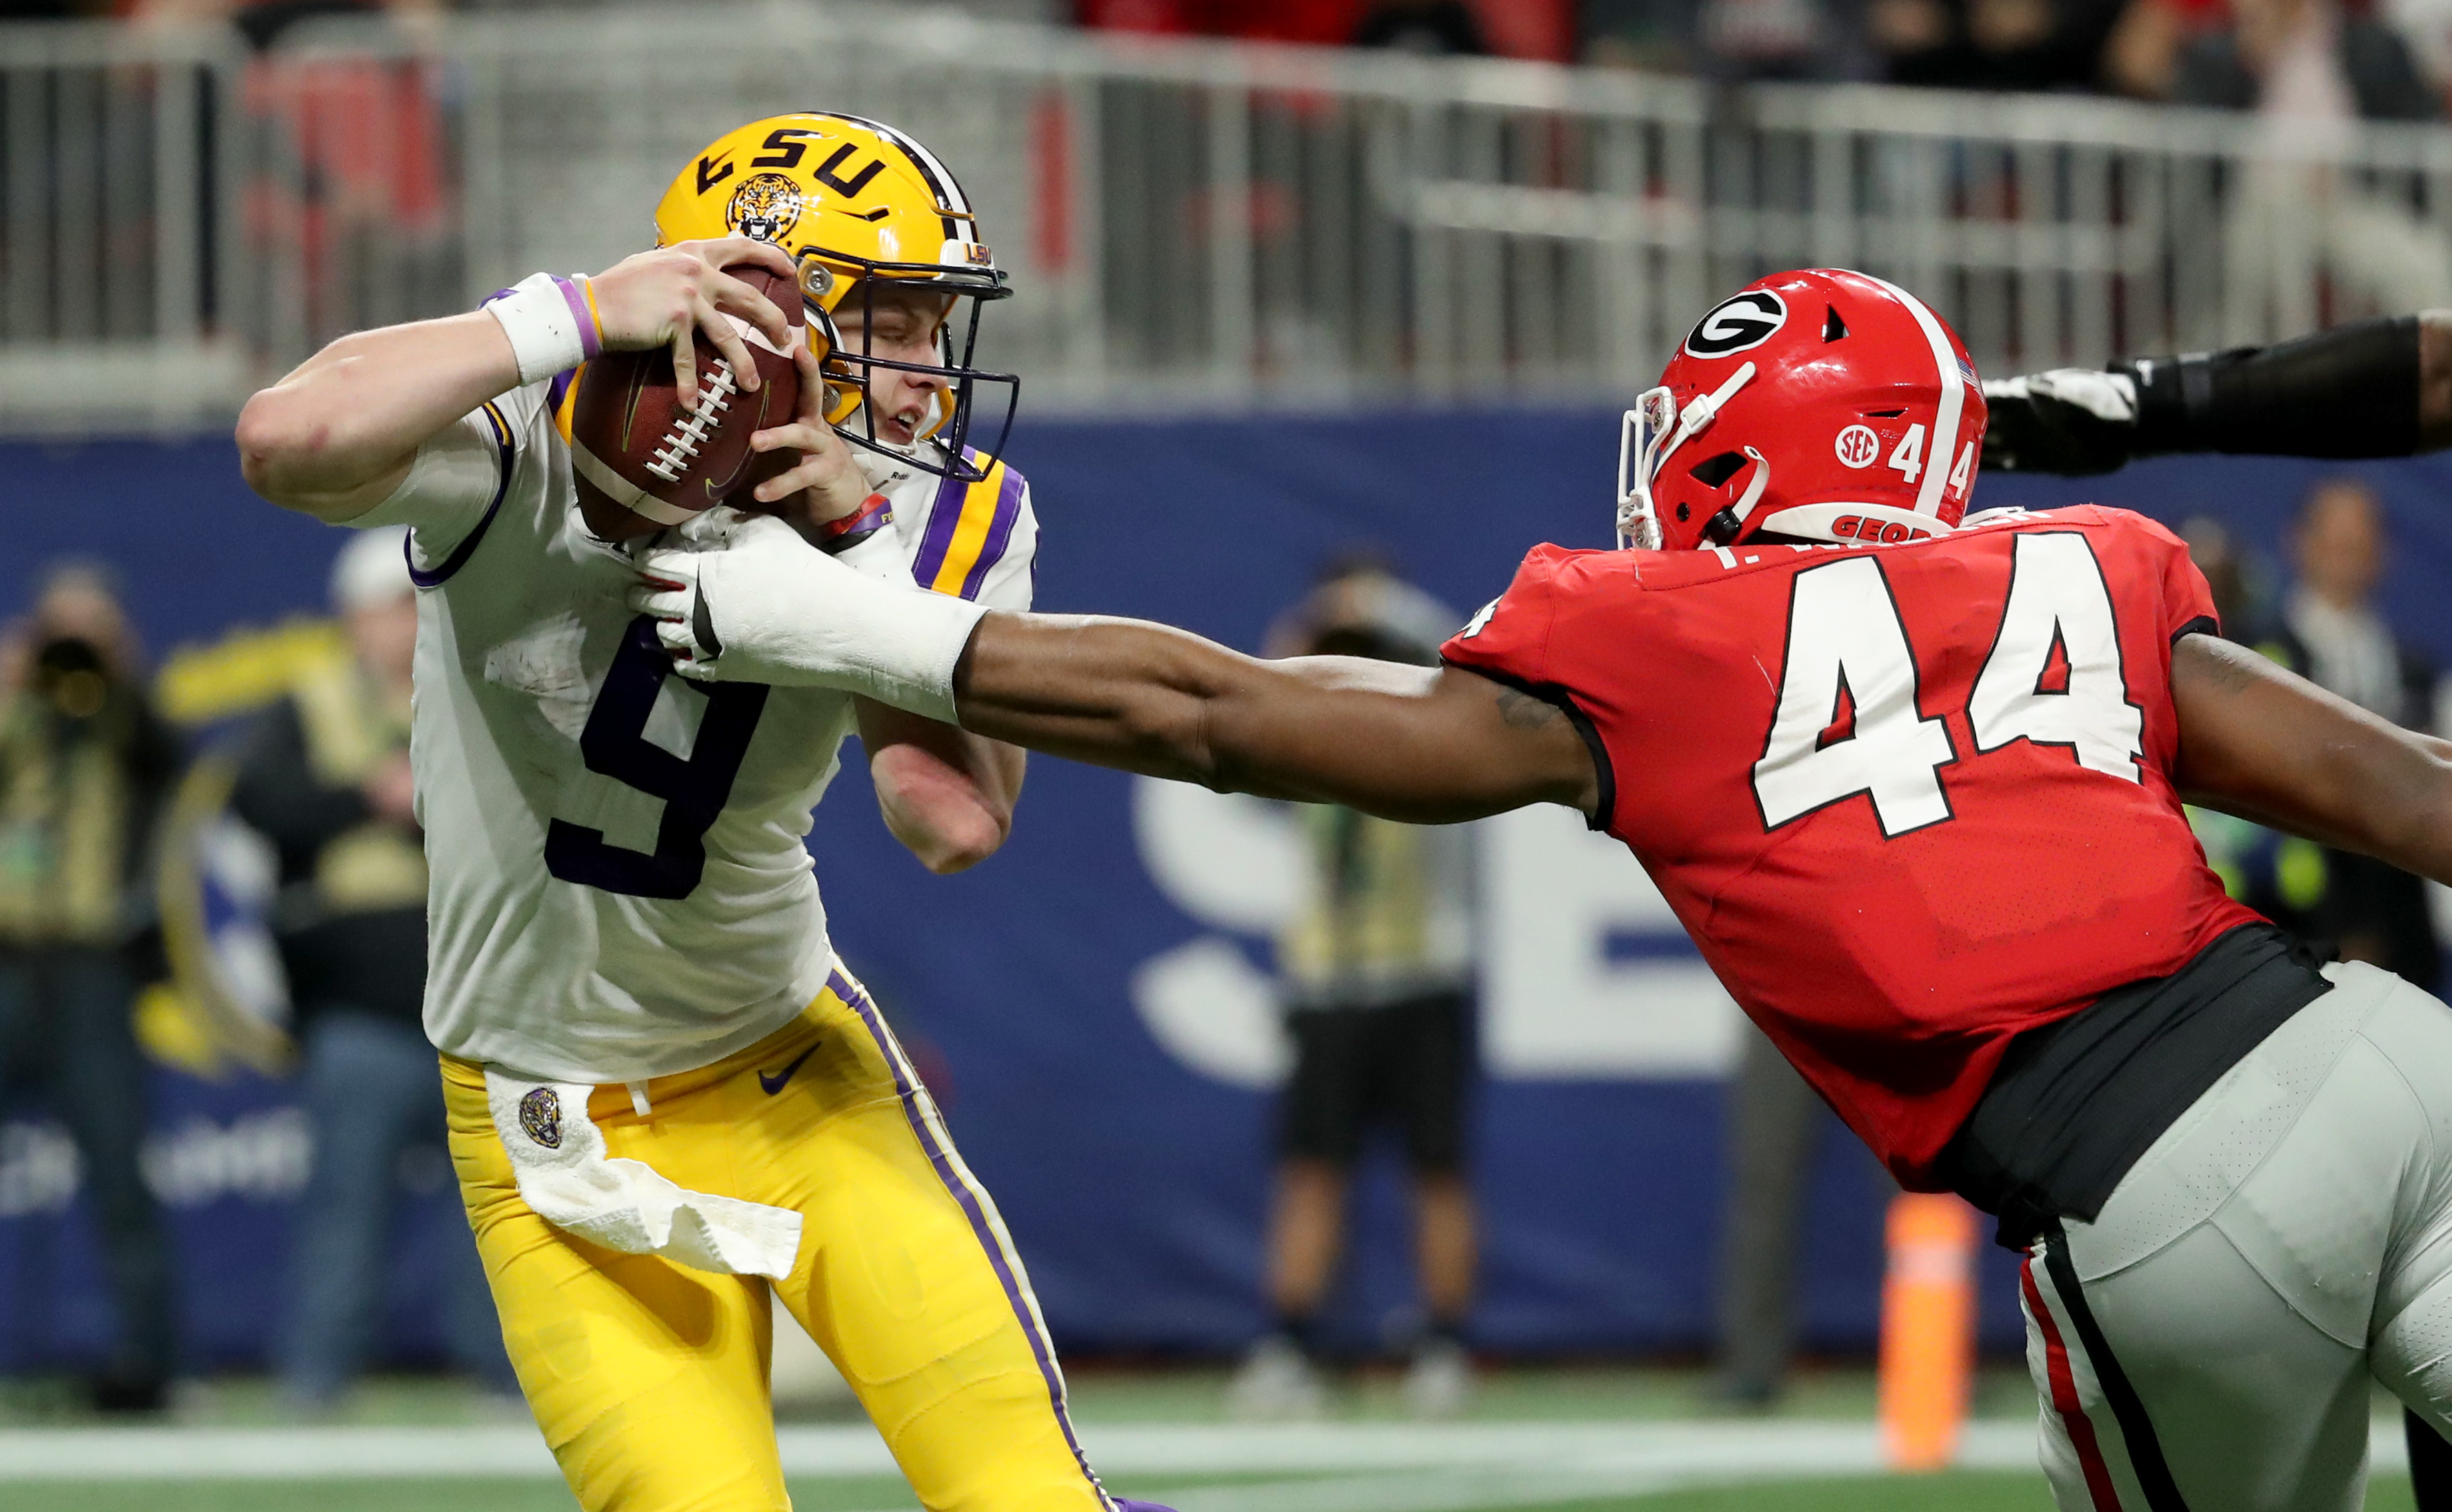 LSU Quarterback Joe Burrow Named AP Player of the Year